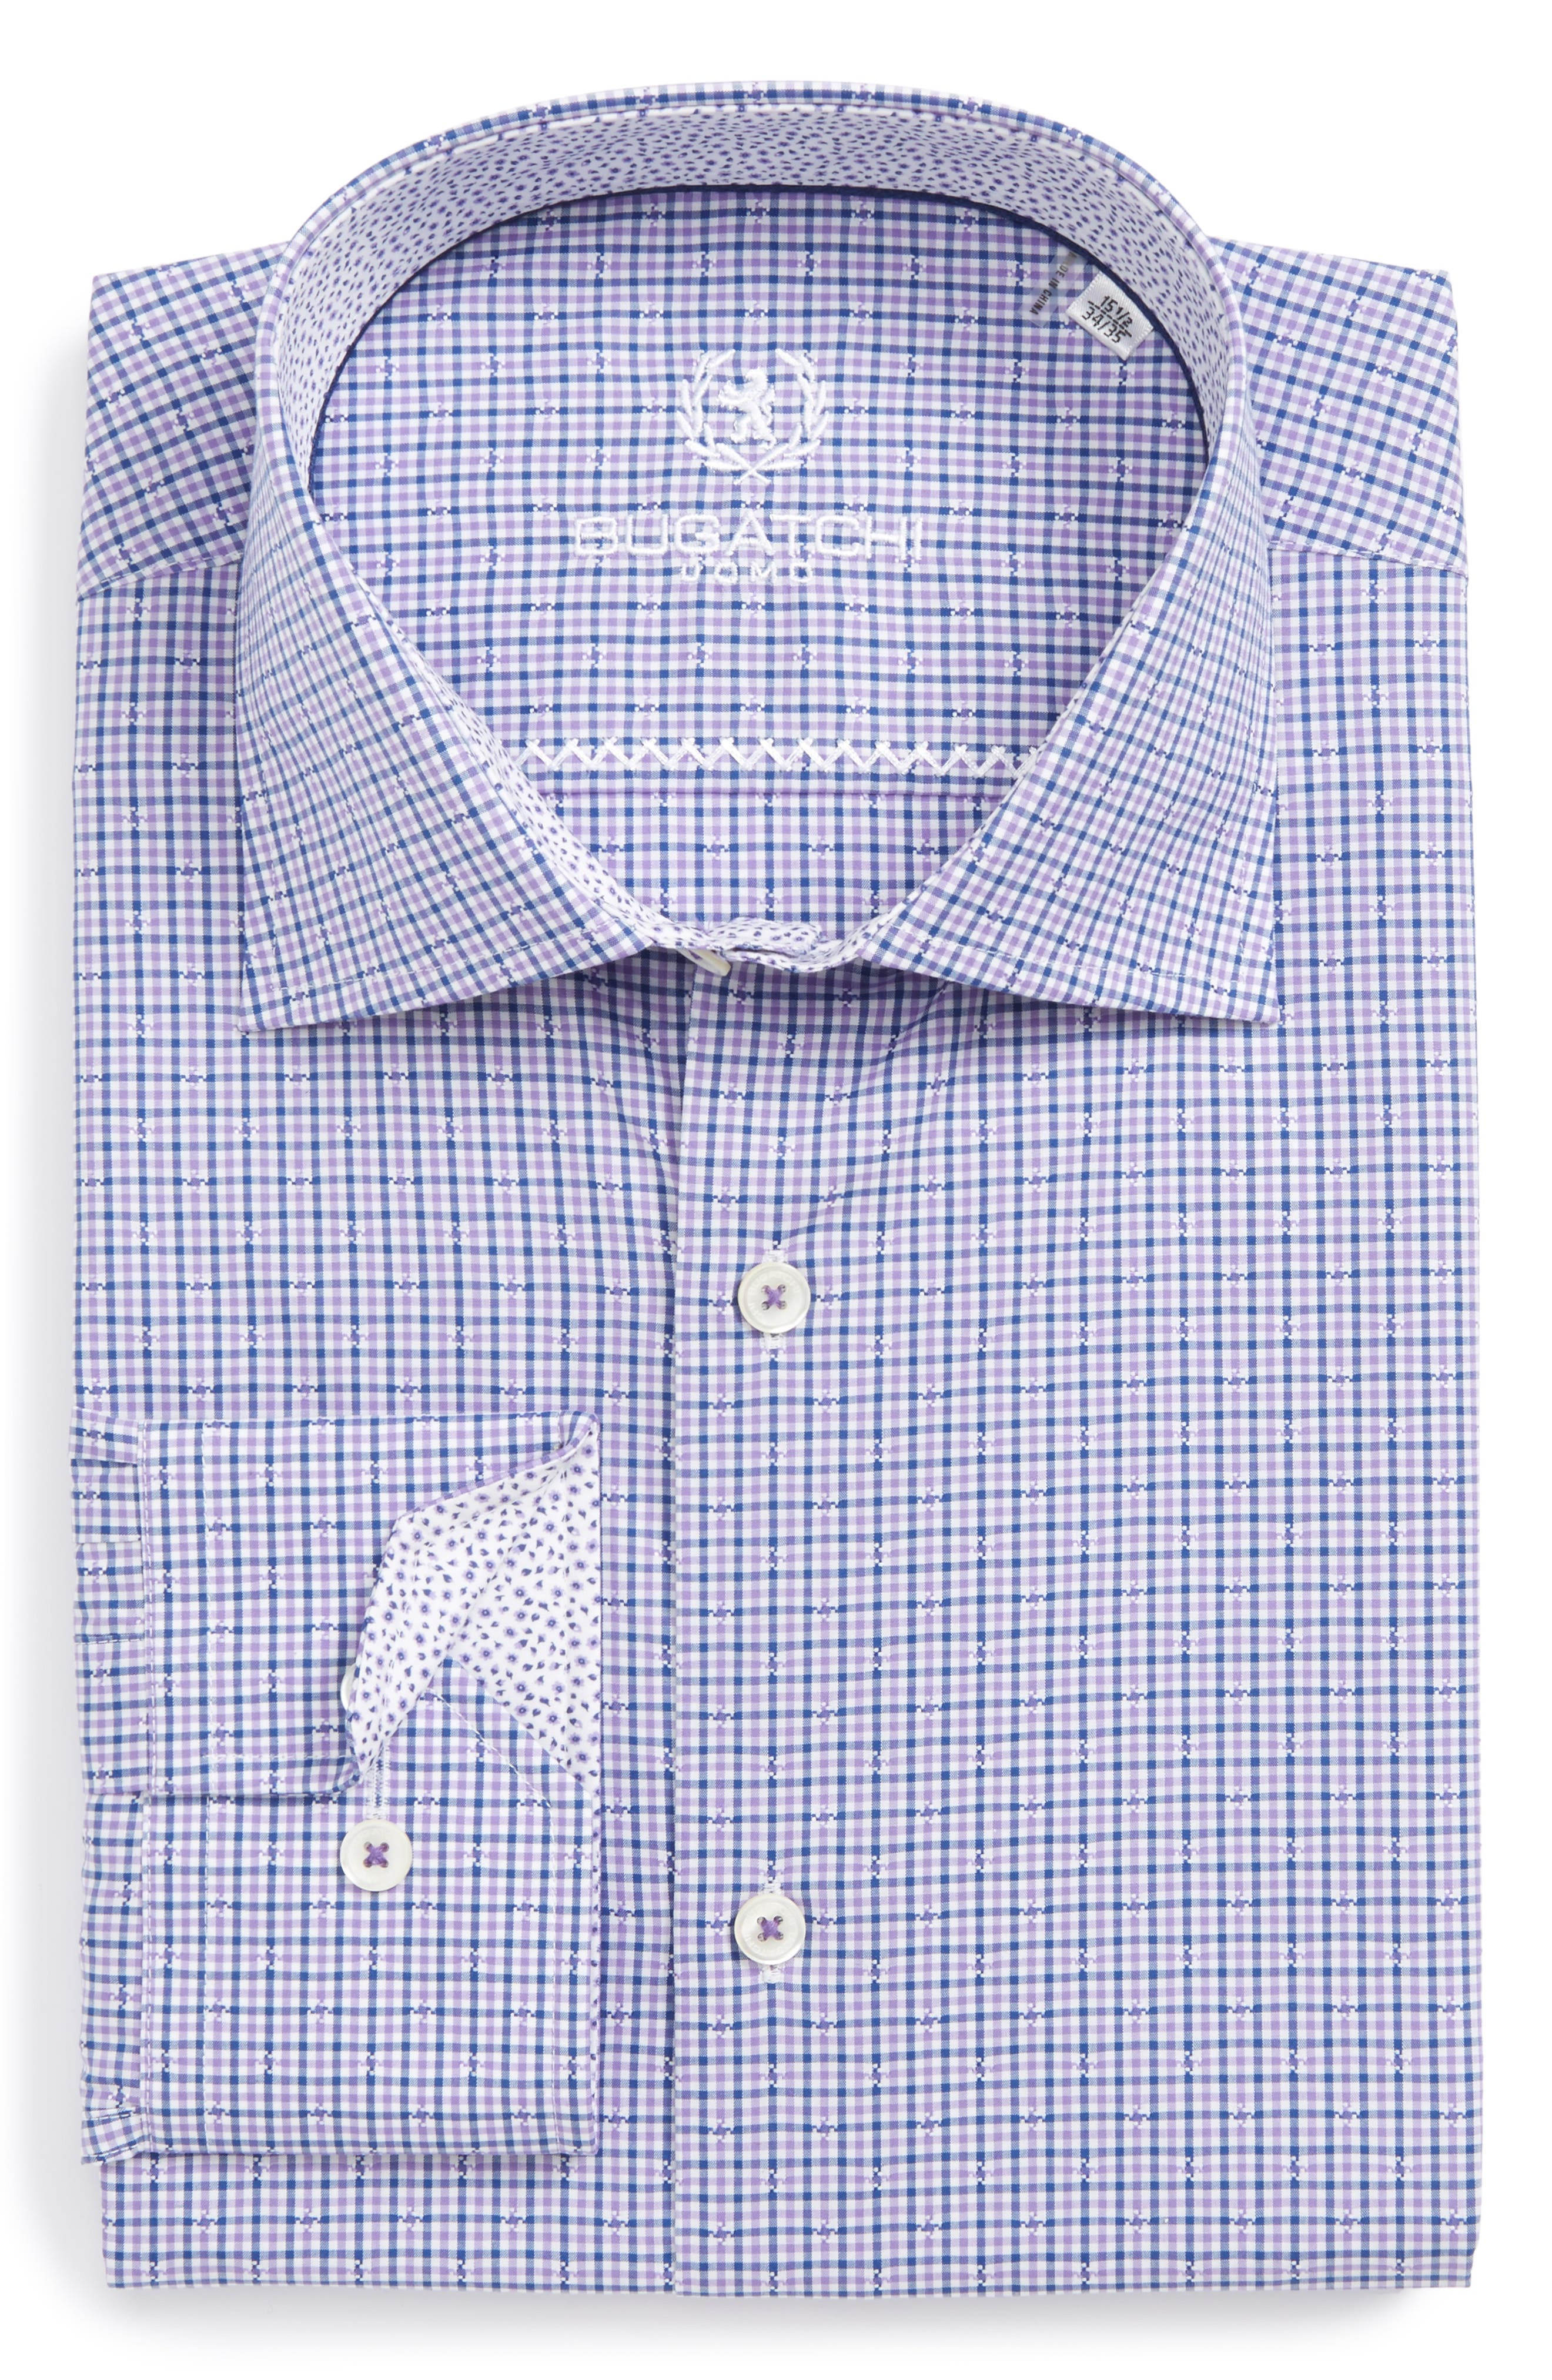 Trim Fit Check Dress Shirt,                             Main thumbnail 1, color,                             Orchid